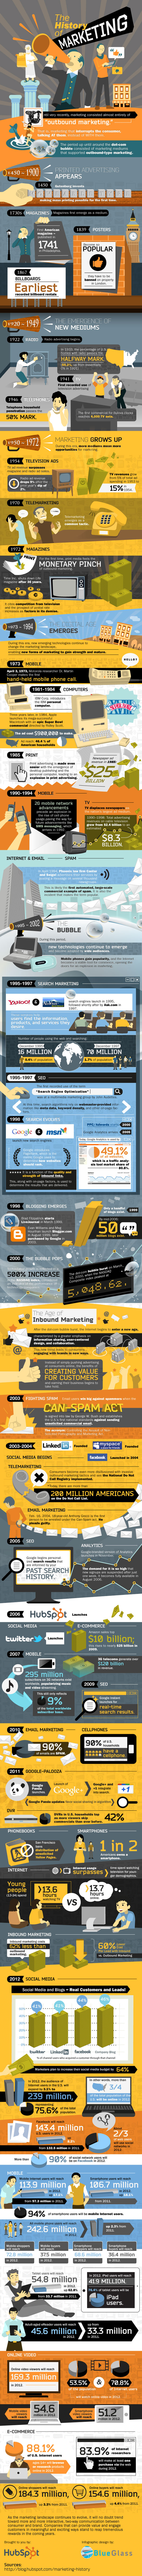 history of marketing infographic The History of Marketing